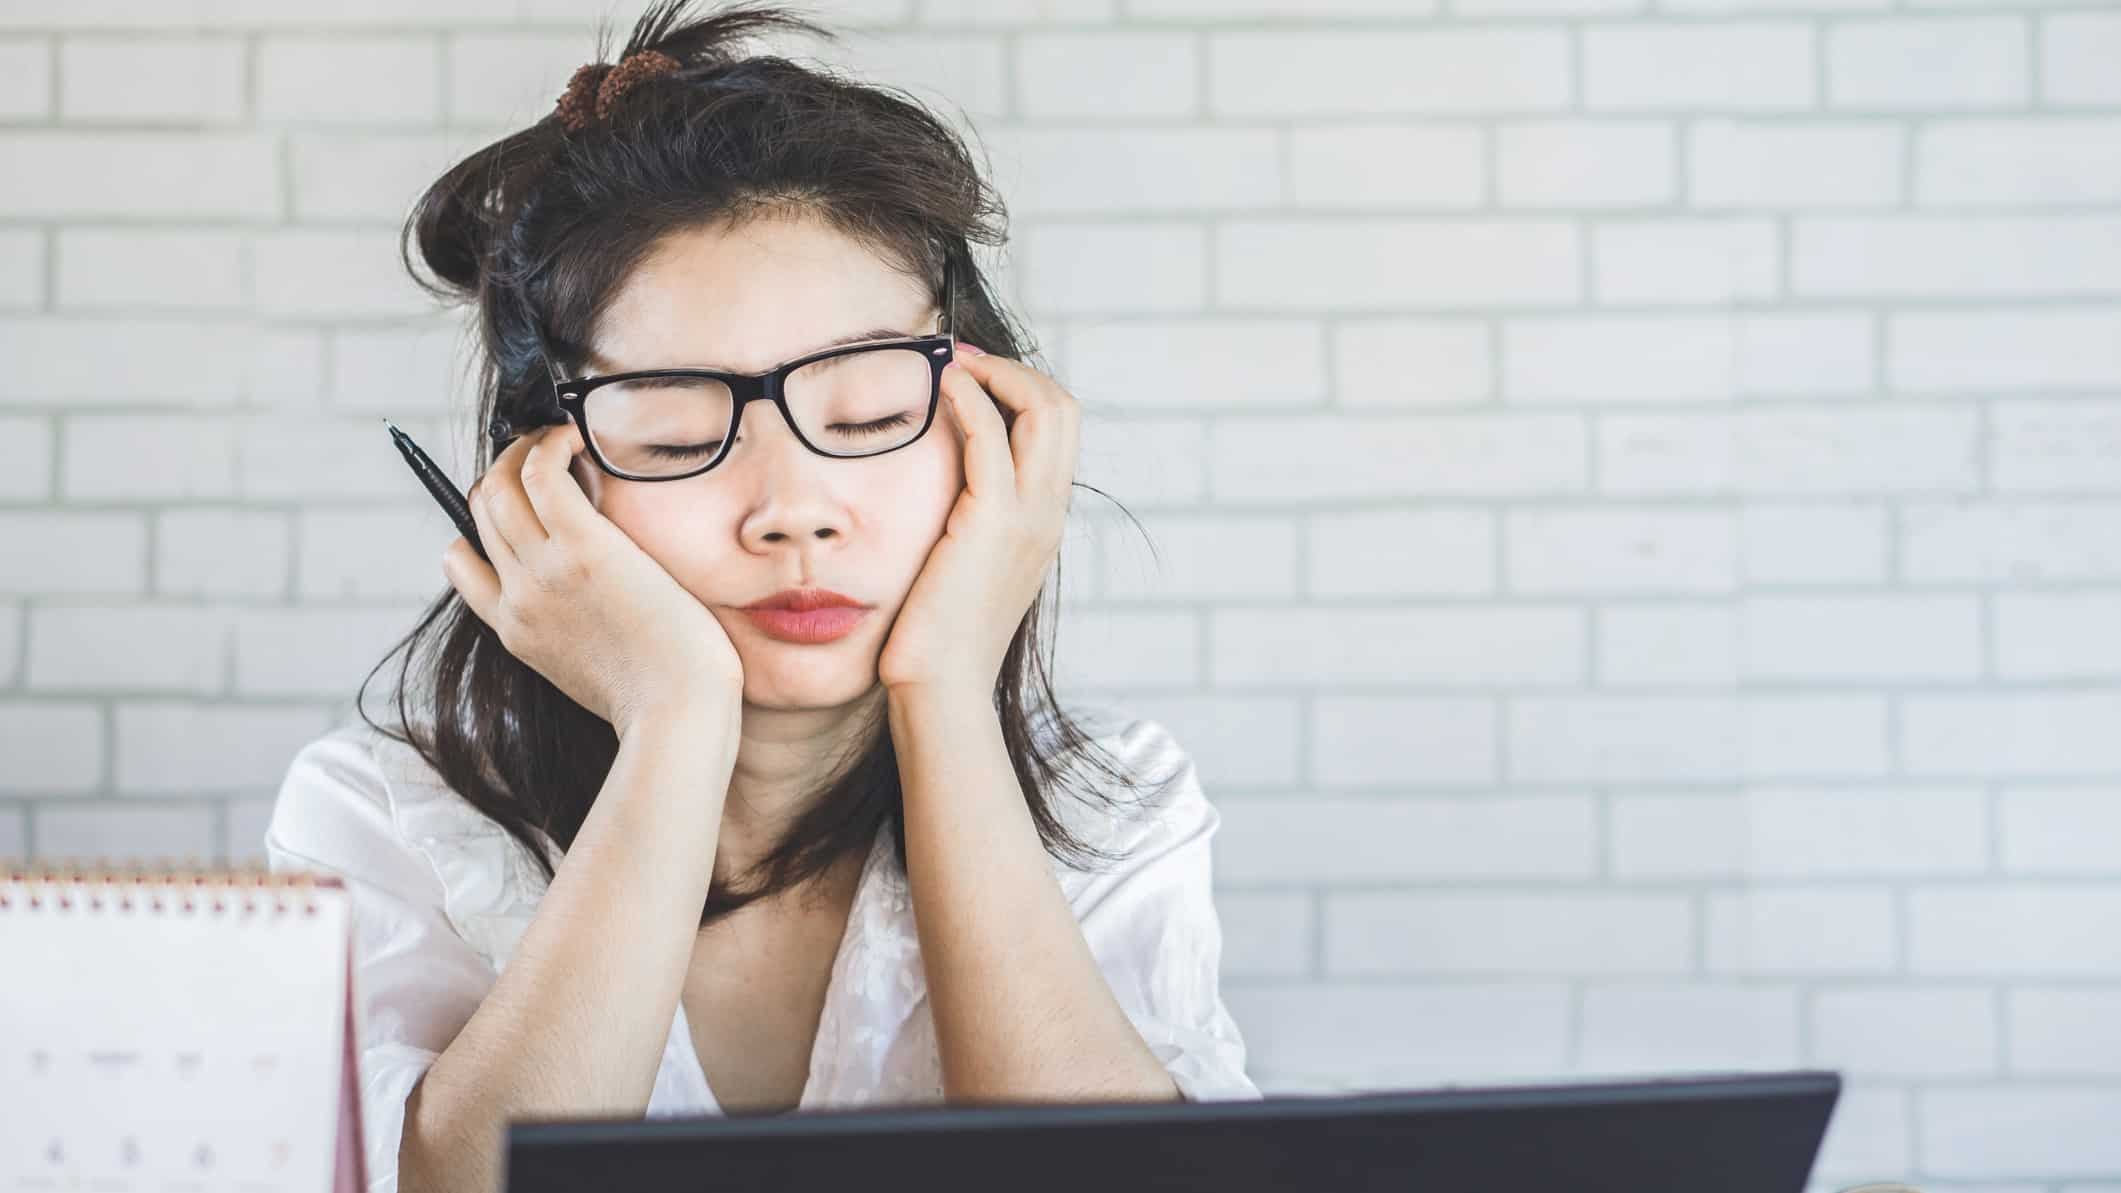 falling asx share price represented by girl falling asleep at her computer